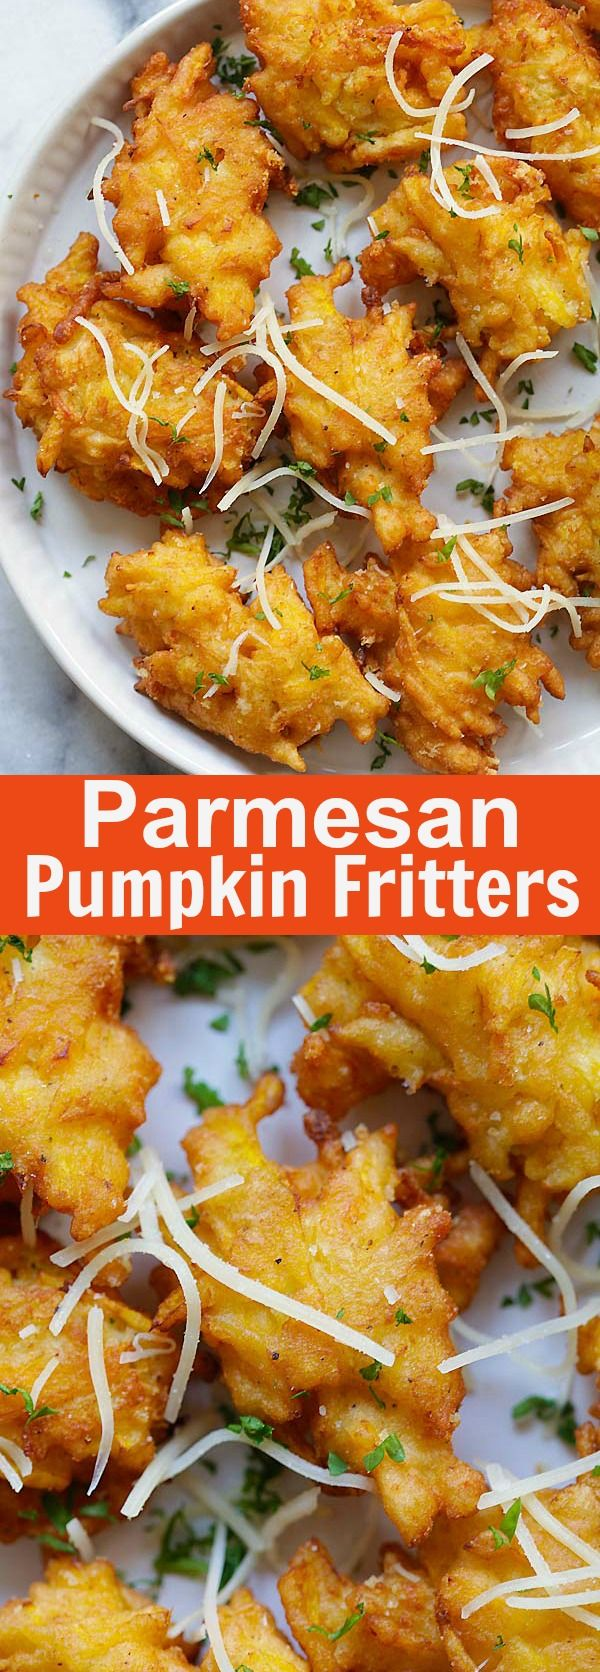 Delicious pumpkin fritters recipe with Parmesan cheese!!! And they're so Easy, and takes only 20 minutes!! from rasamalaysia.com